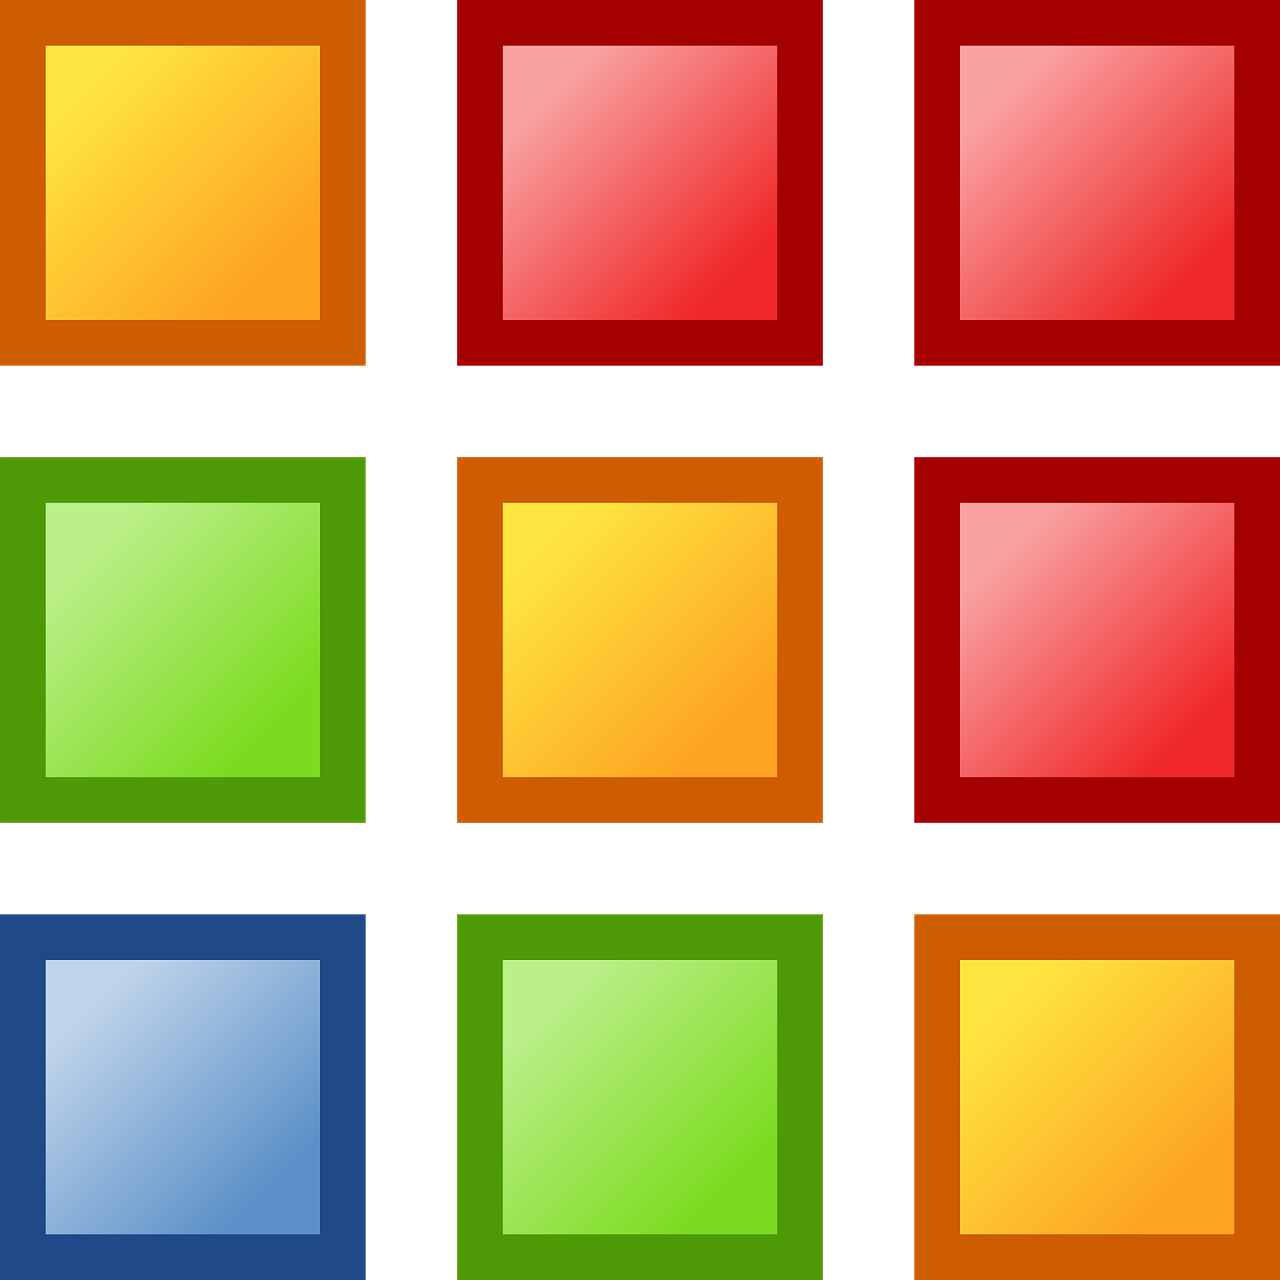 squares shapes colorful free photo